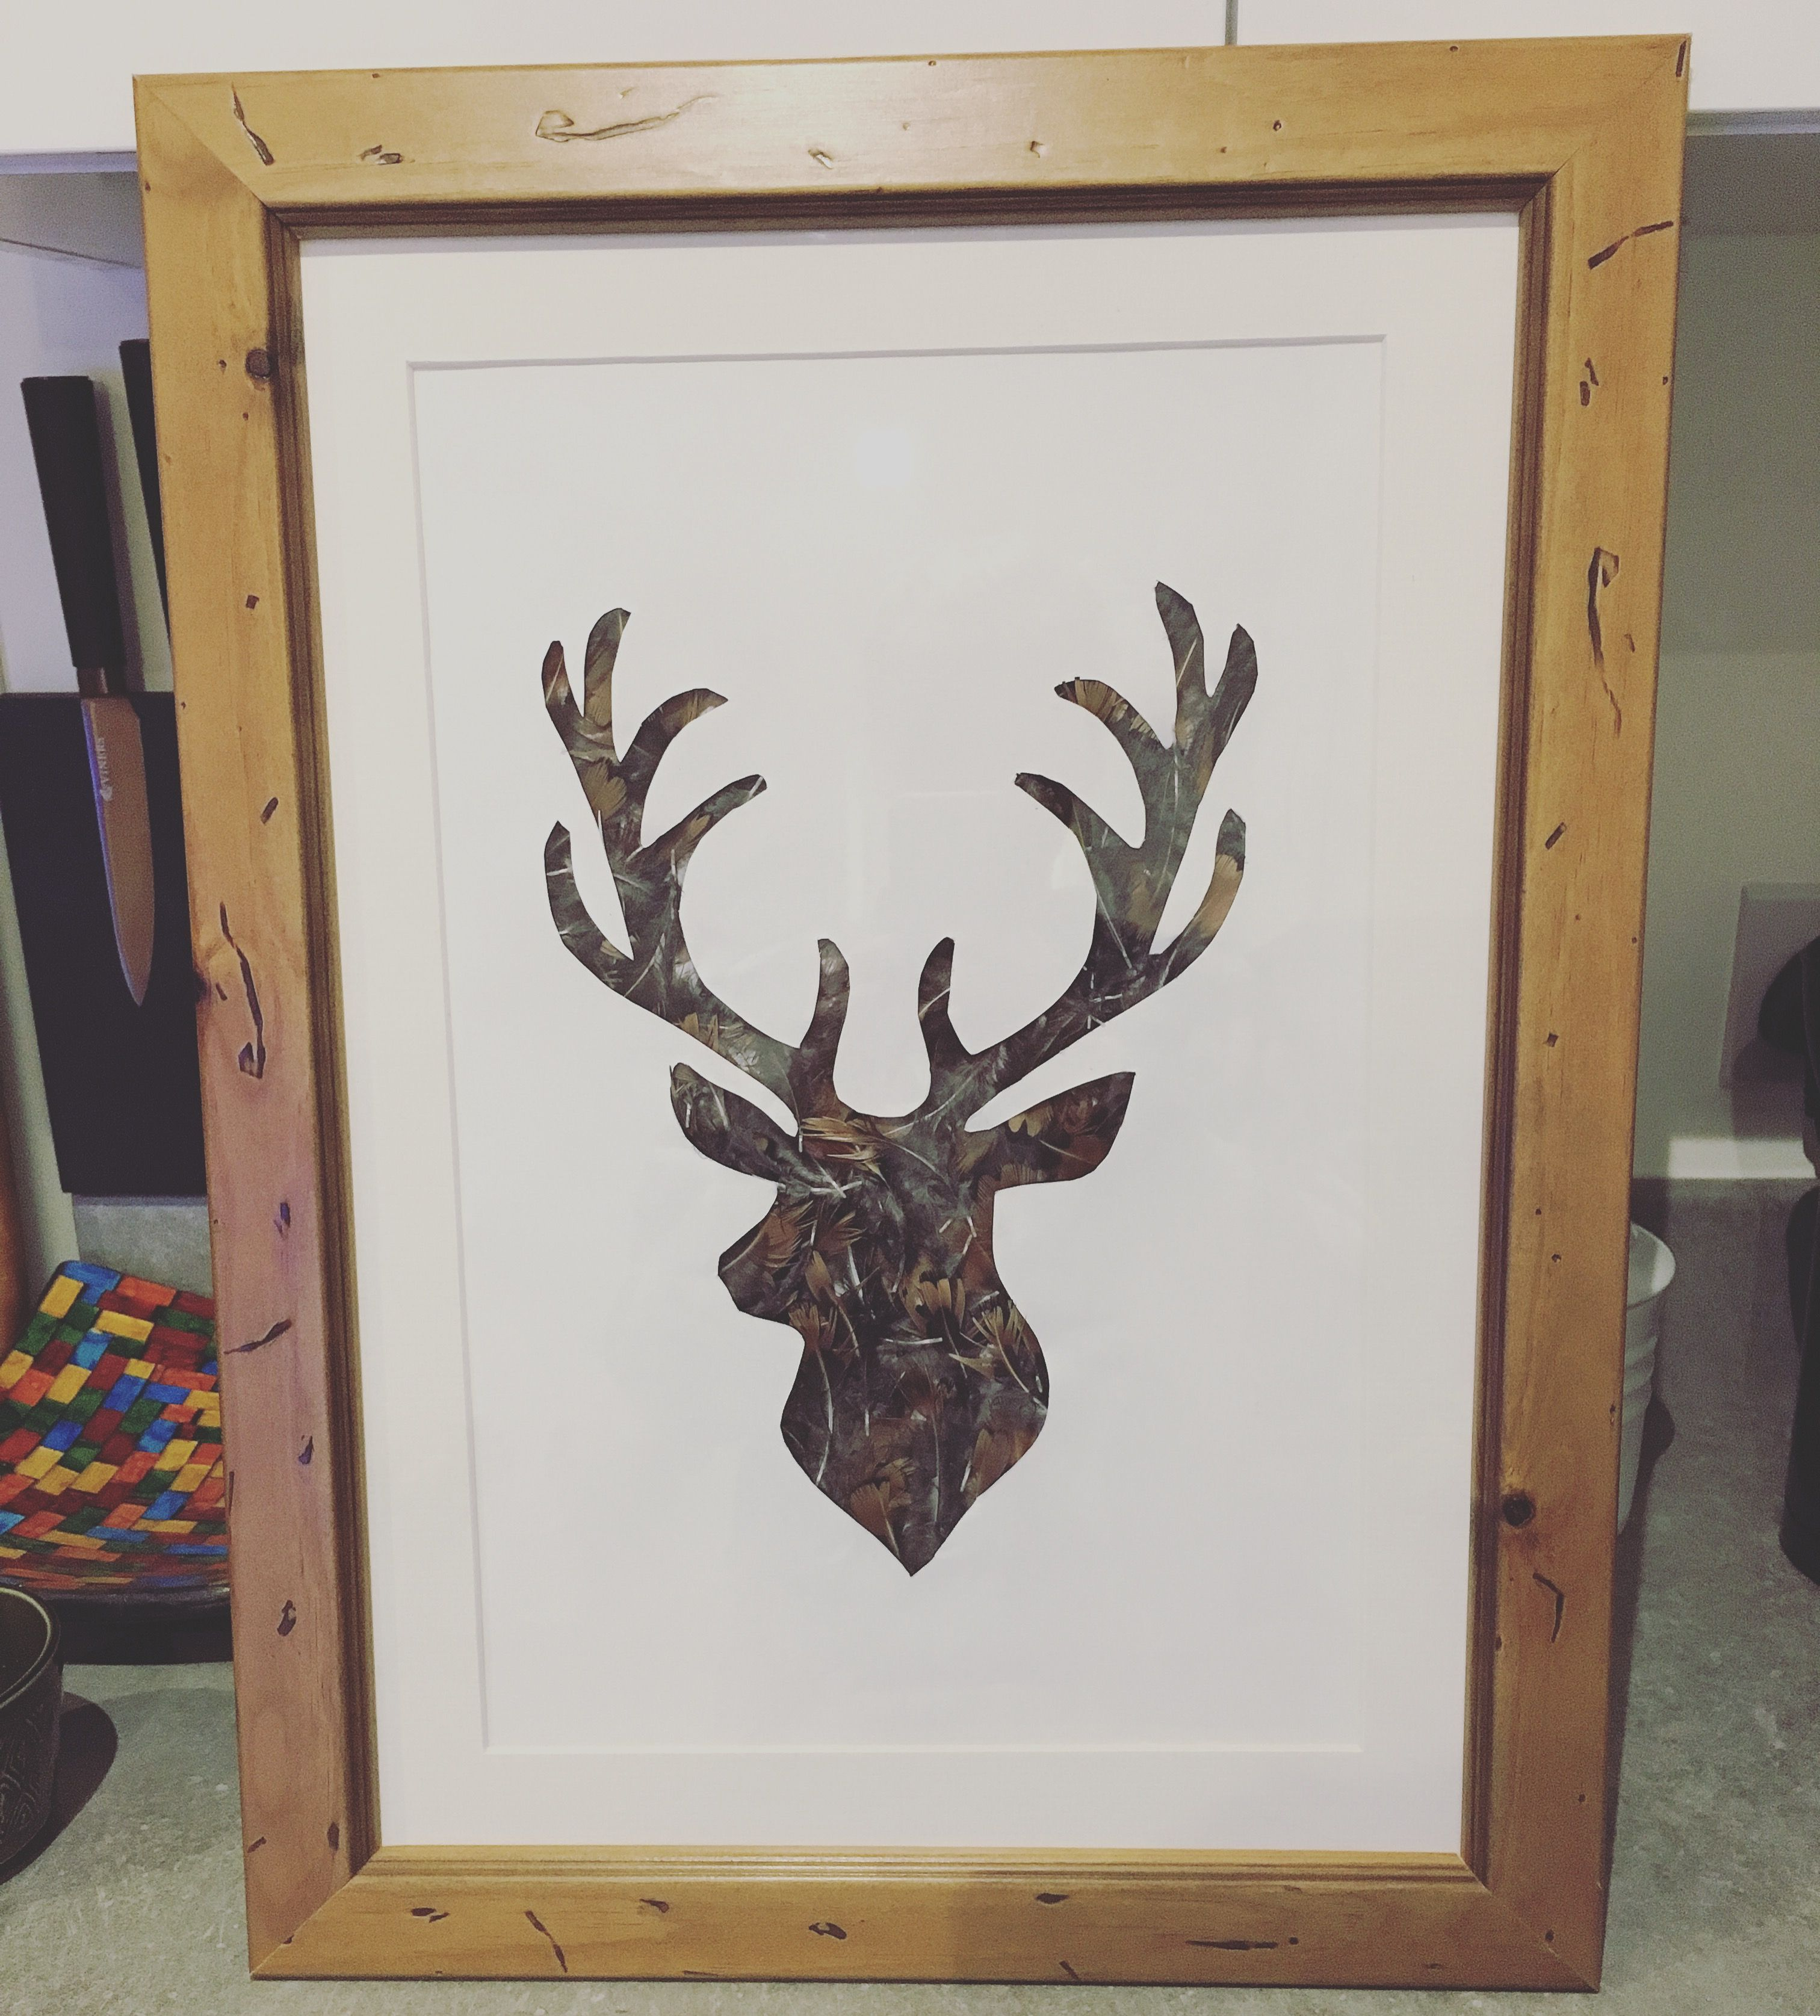 How to clean pheasant feathers - Pheasant Feathers Behind A Stag Cut Out Mounted And Framed